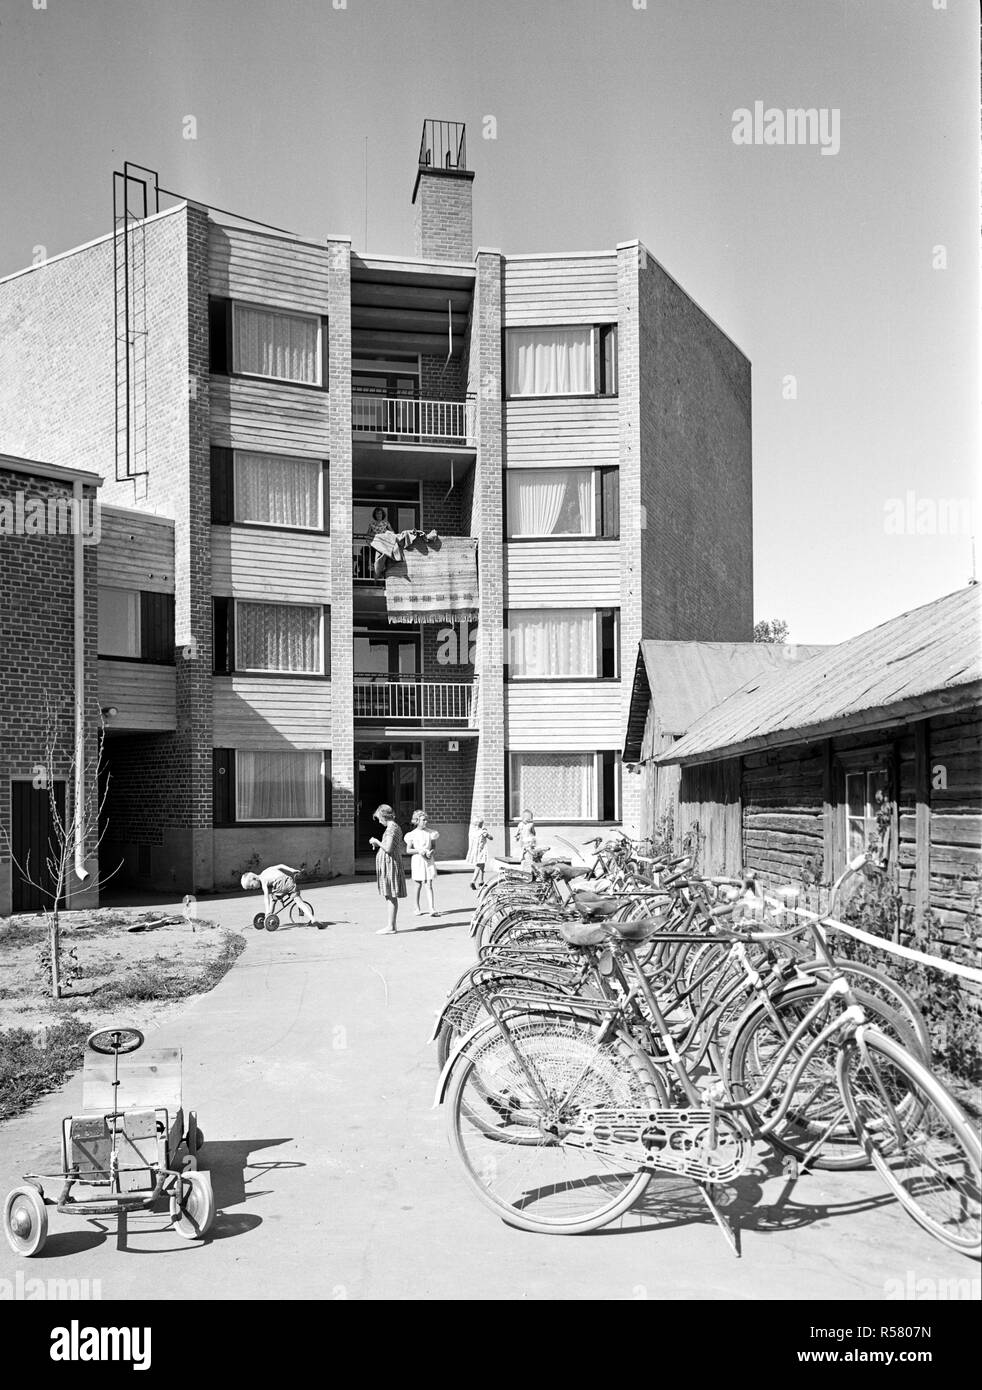 Finland History - Apartment building with bicylcles parked and go-cart, in  Lohja, Uusimaa, Finland in 1955 - Stock Image